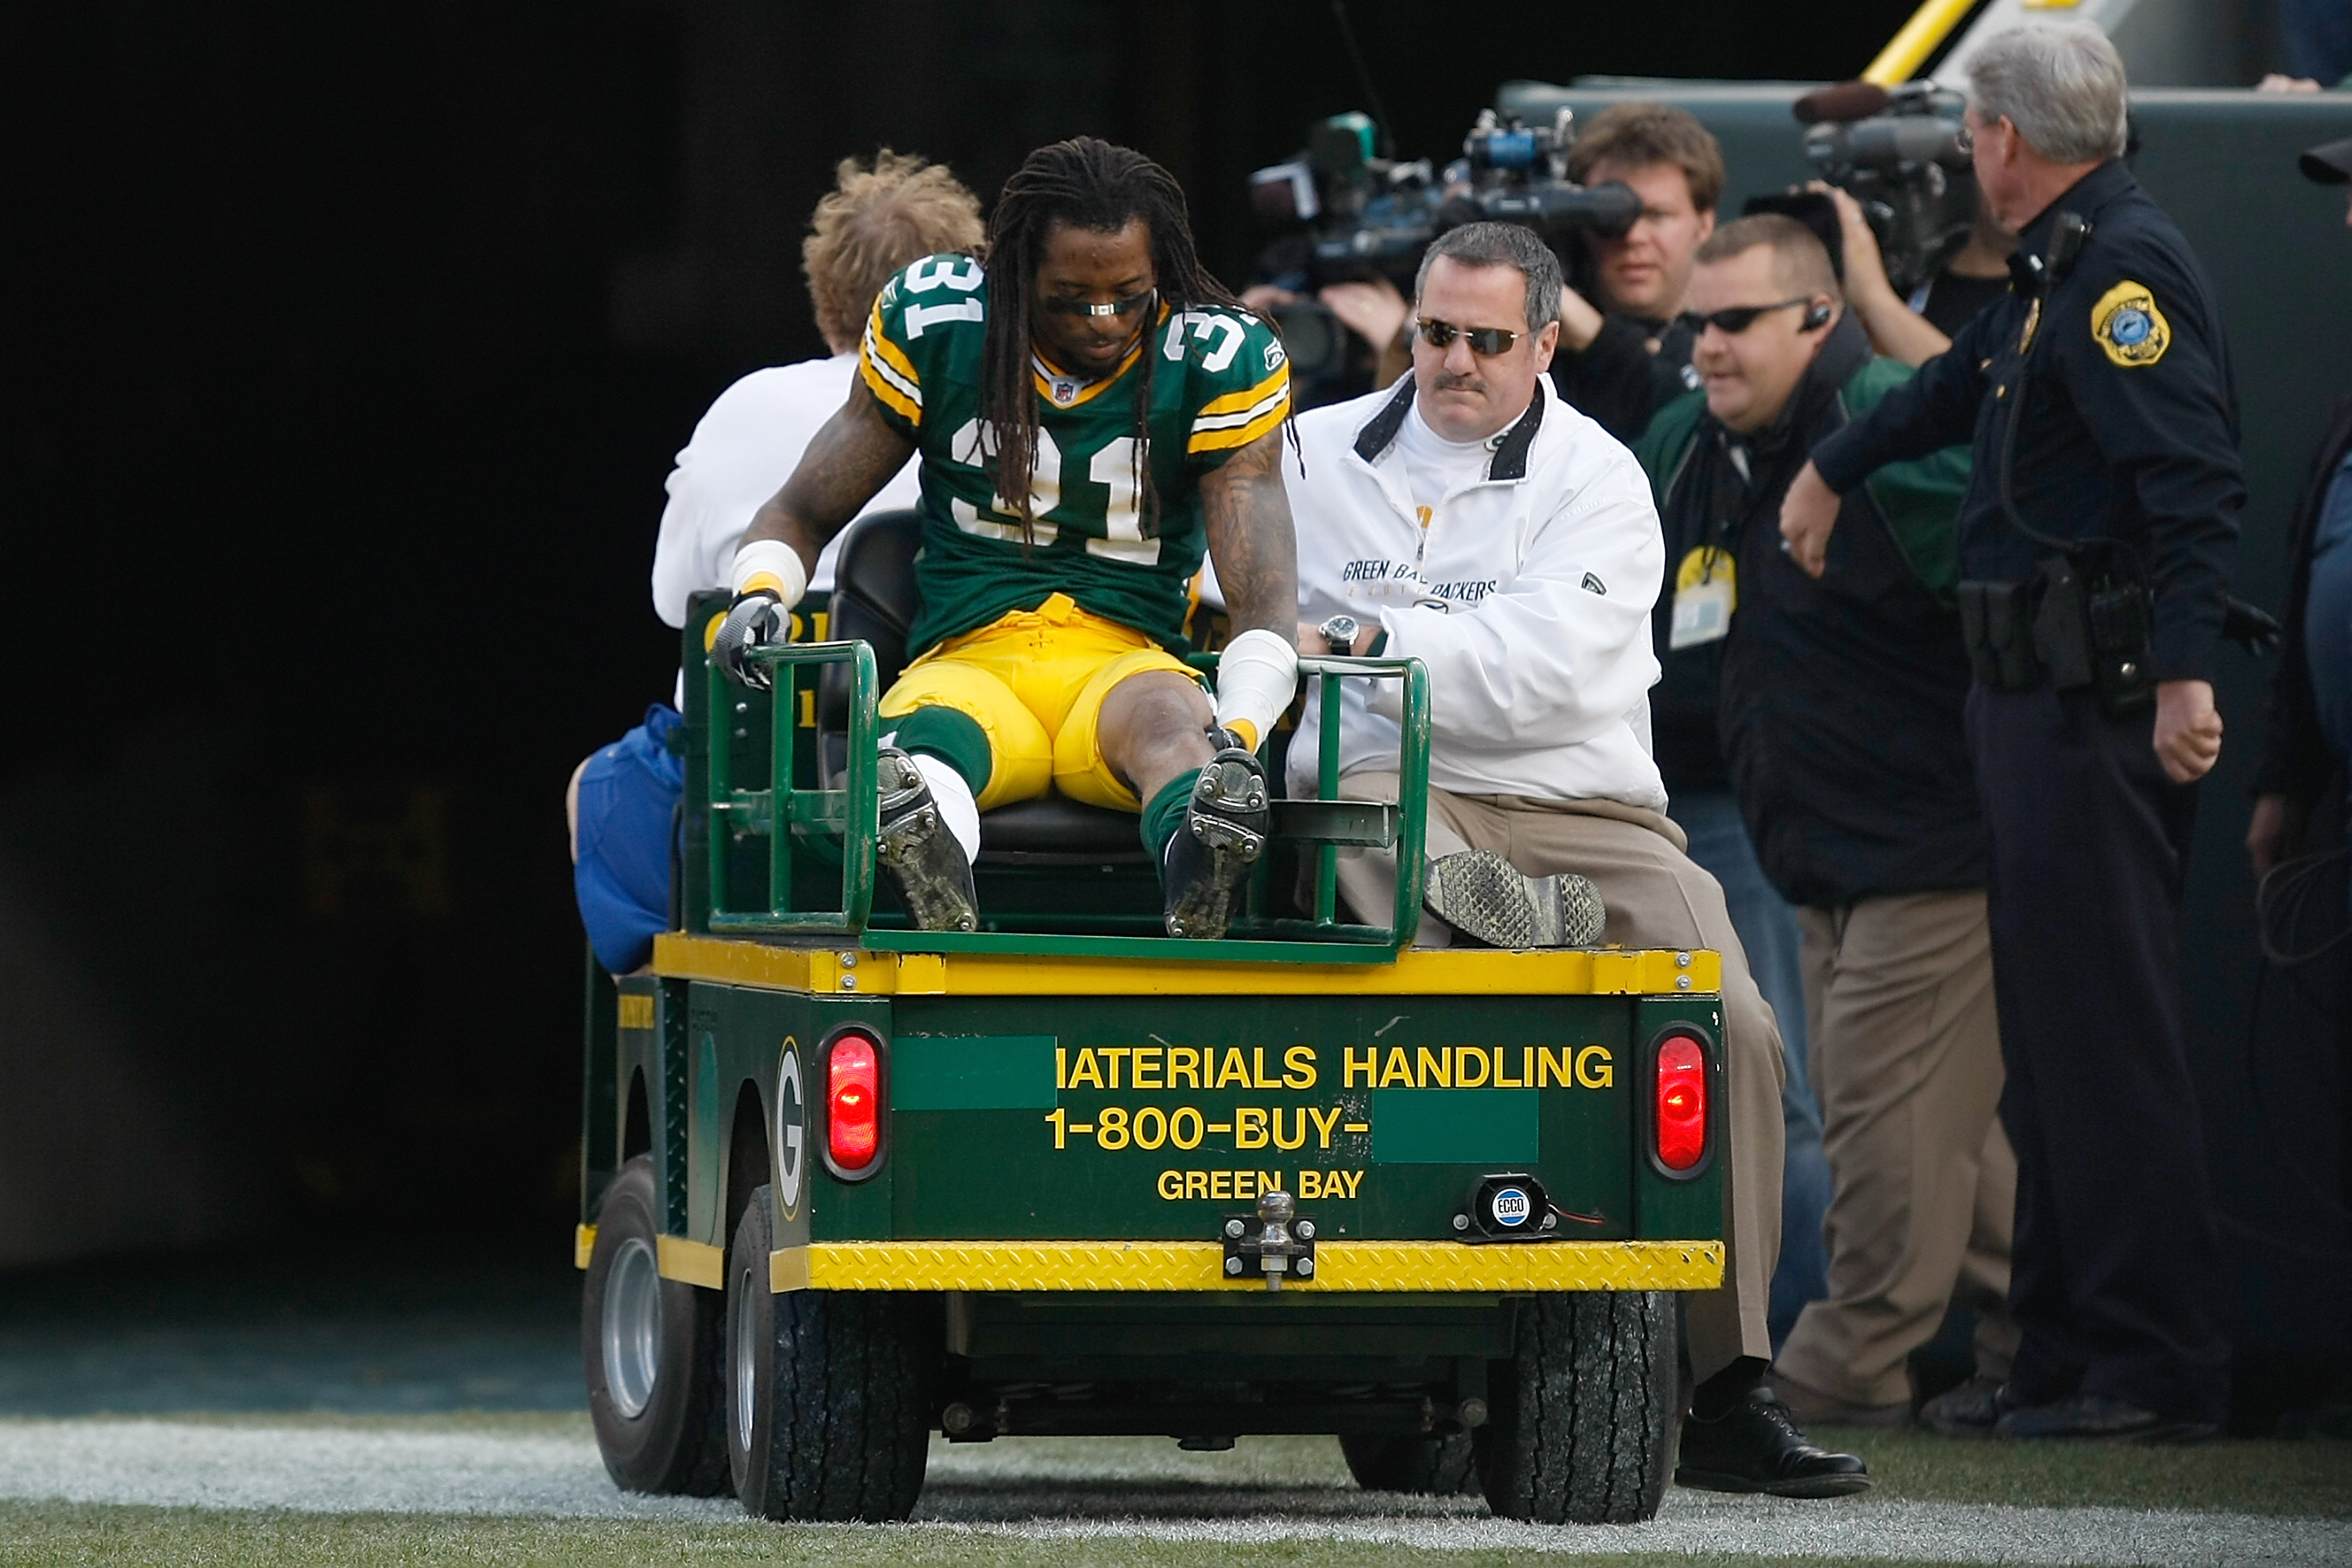 GREEN BAY, WI - NOVEMBER 22: Defensive back Al Harris #31 of the Green Bay Packers is taken off the field on a cart after an injury against the San Francisco 49ers at Lambeau Field on November 22, 2009 in Green Bay, Wisconsin. The Packers defeated the 49e